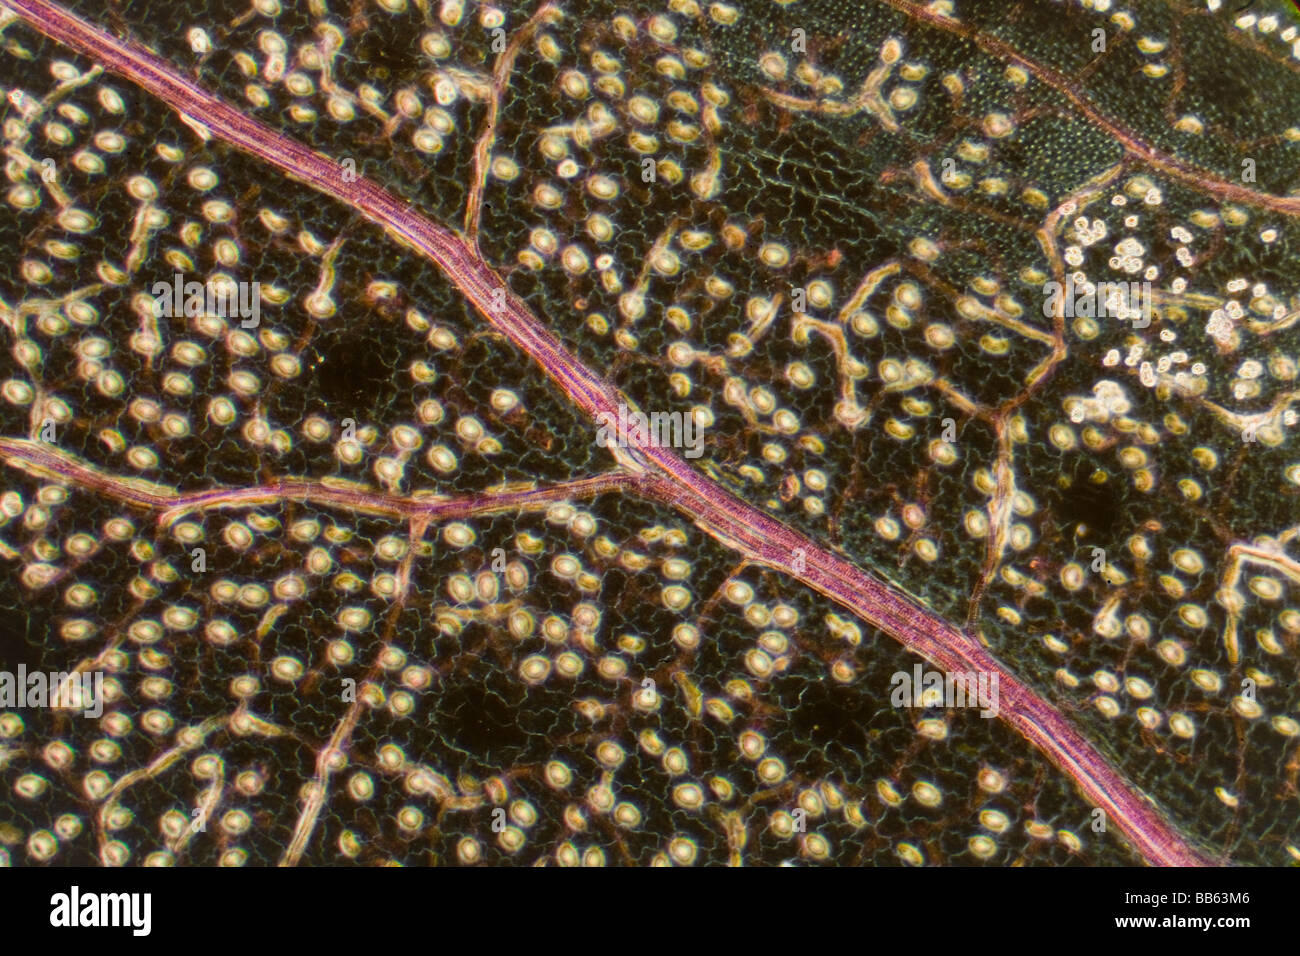 St Johns Wort leaf vein detail photomicrograph - Stock Image